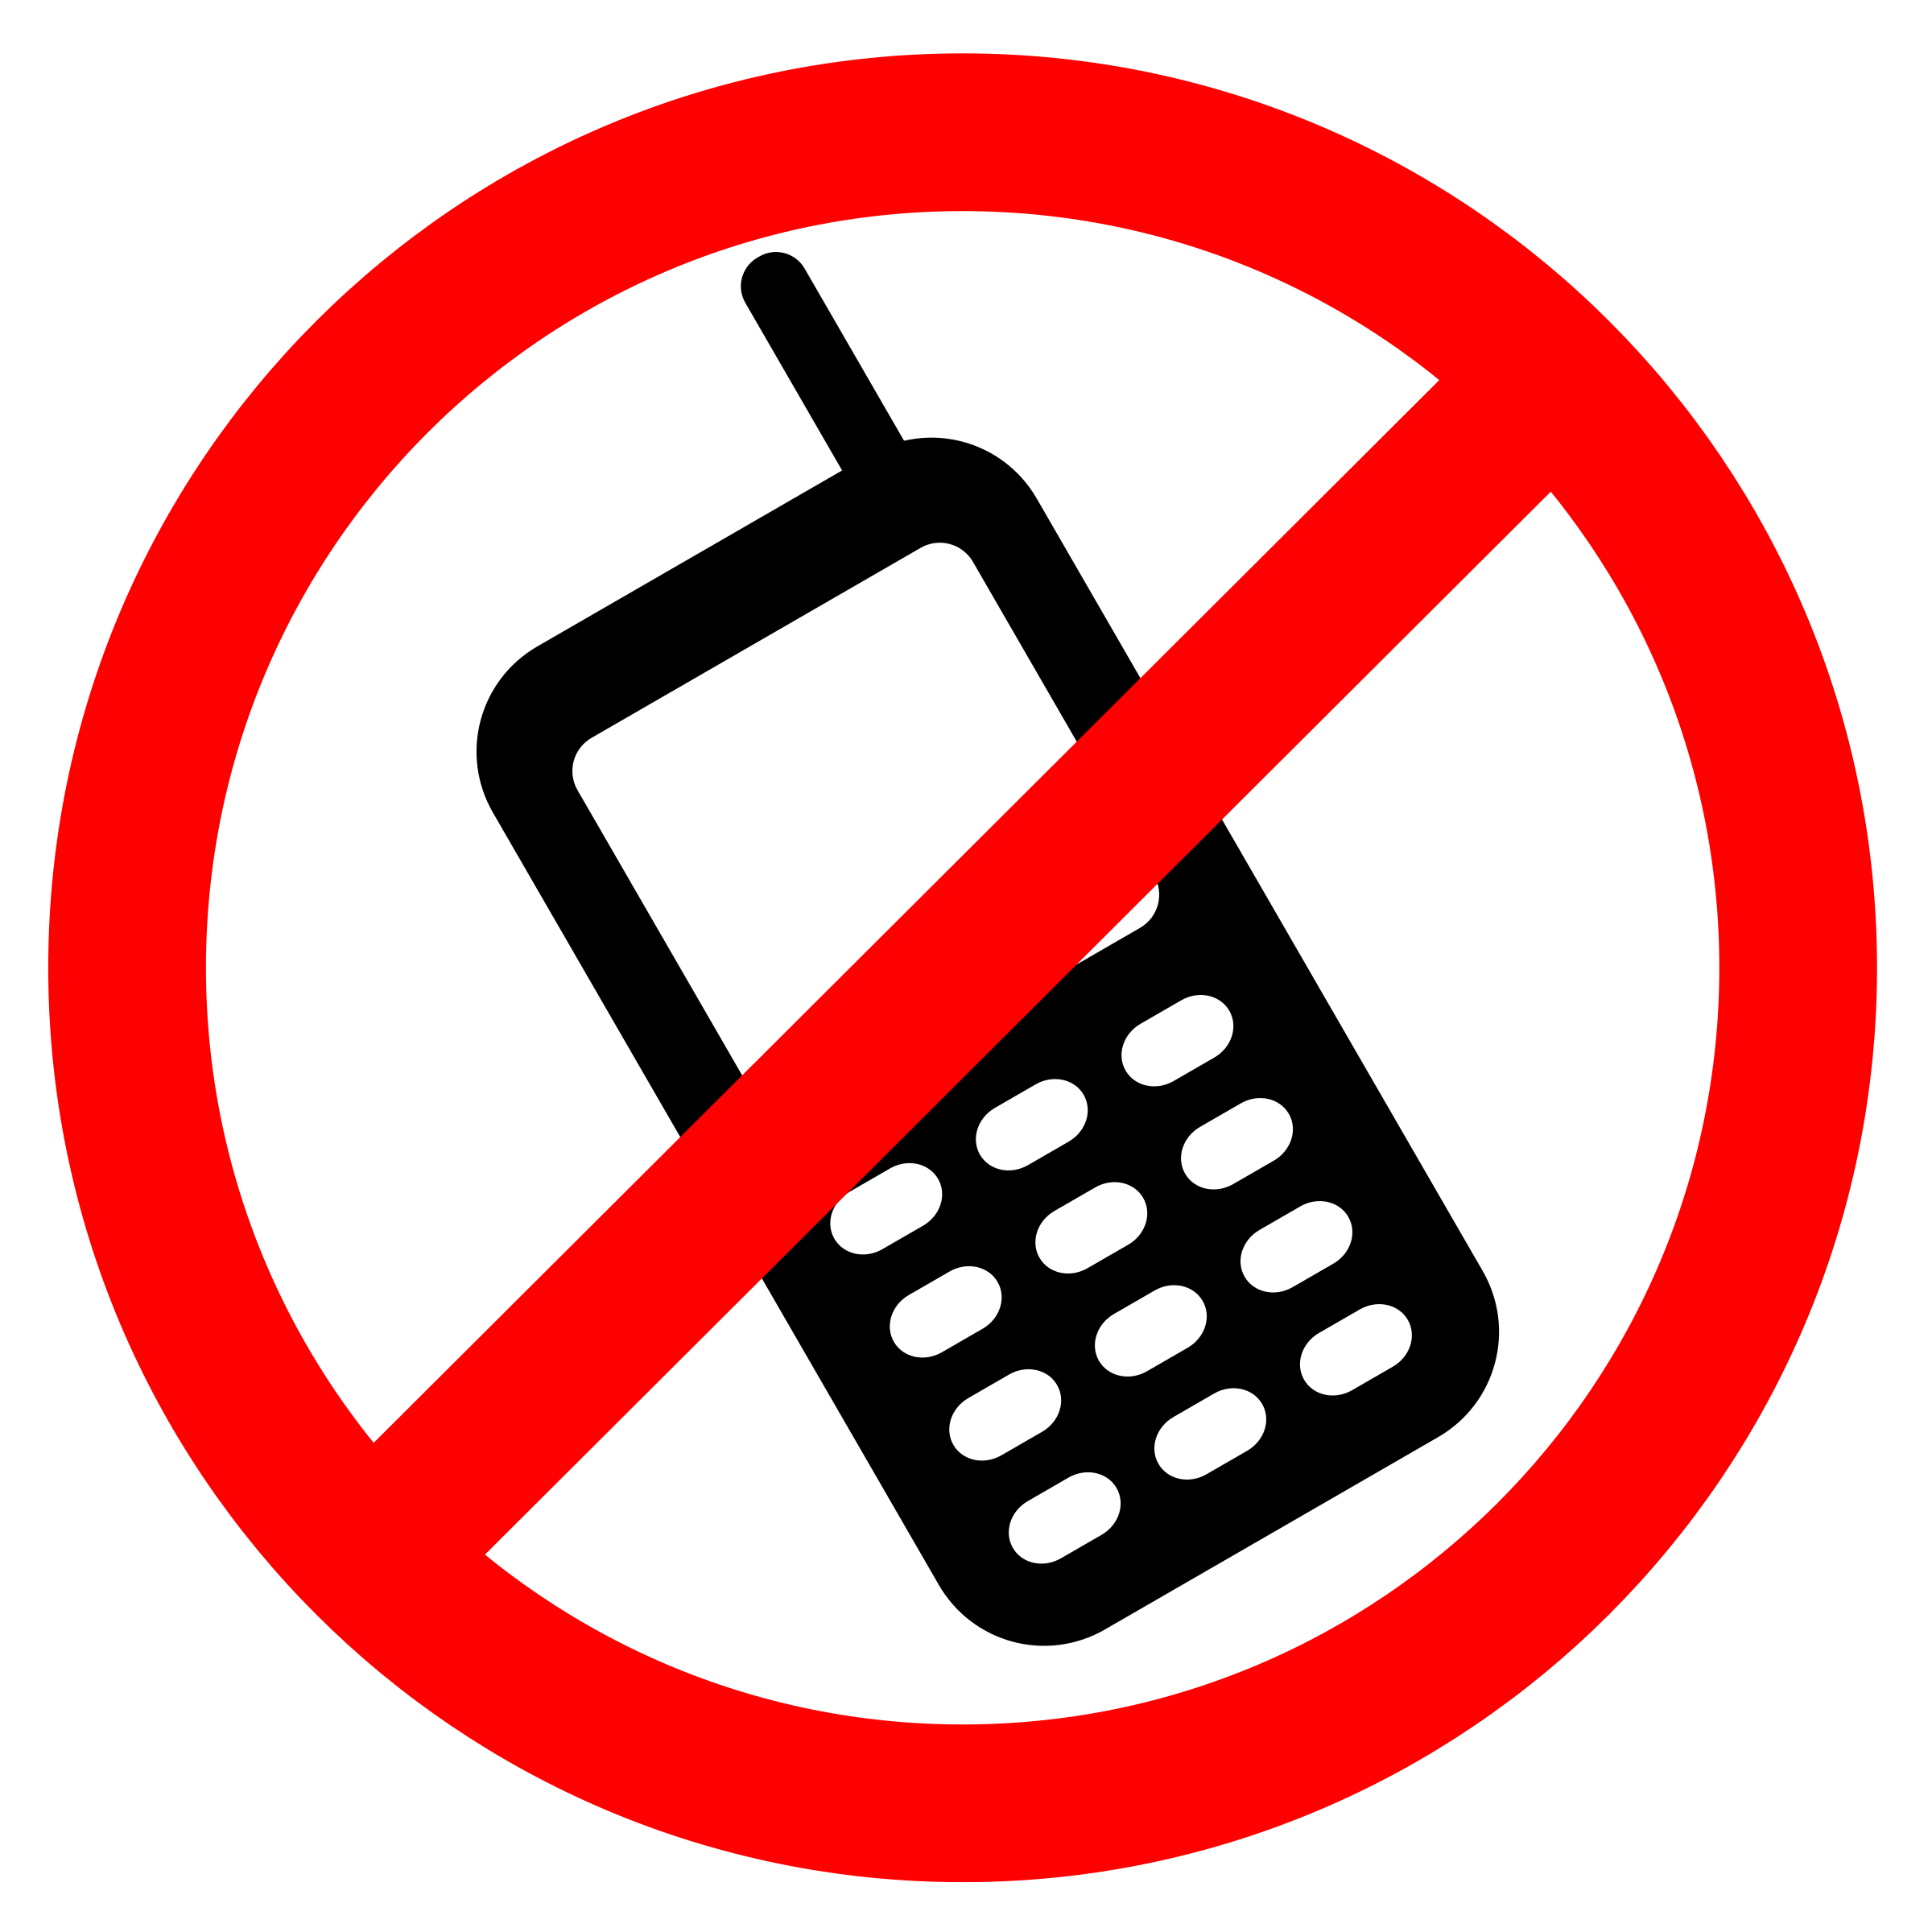 No cell phones allowed. Flu clipart grandmother sick